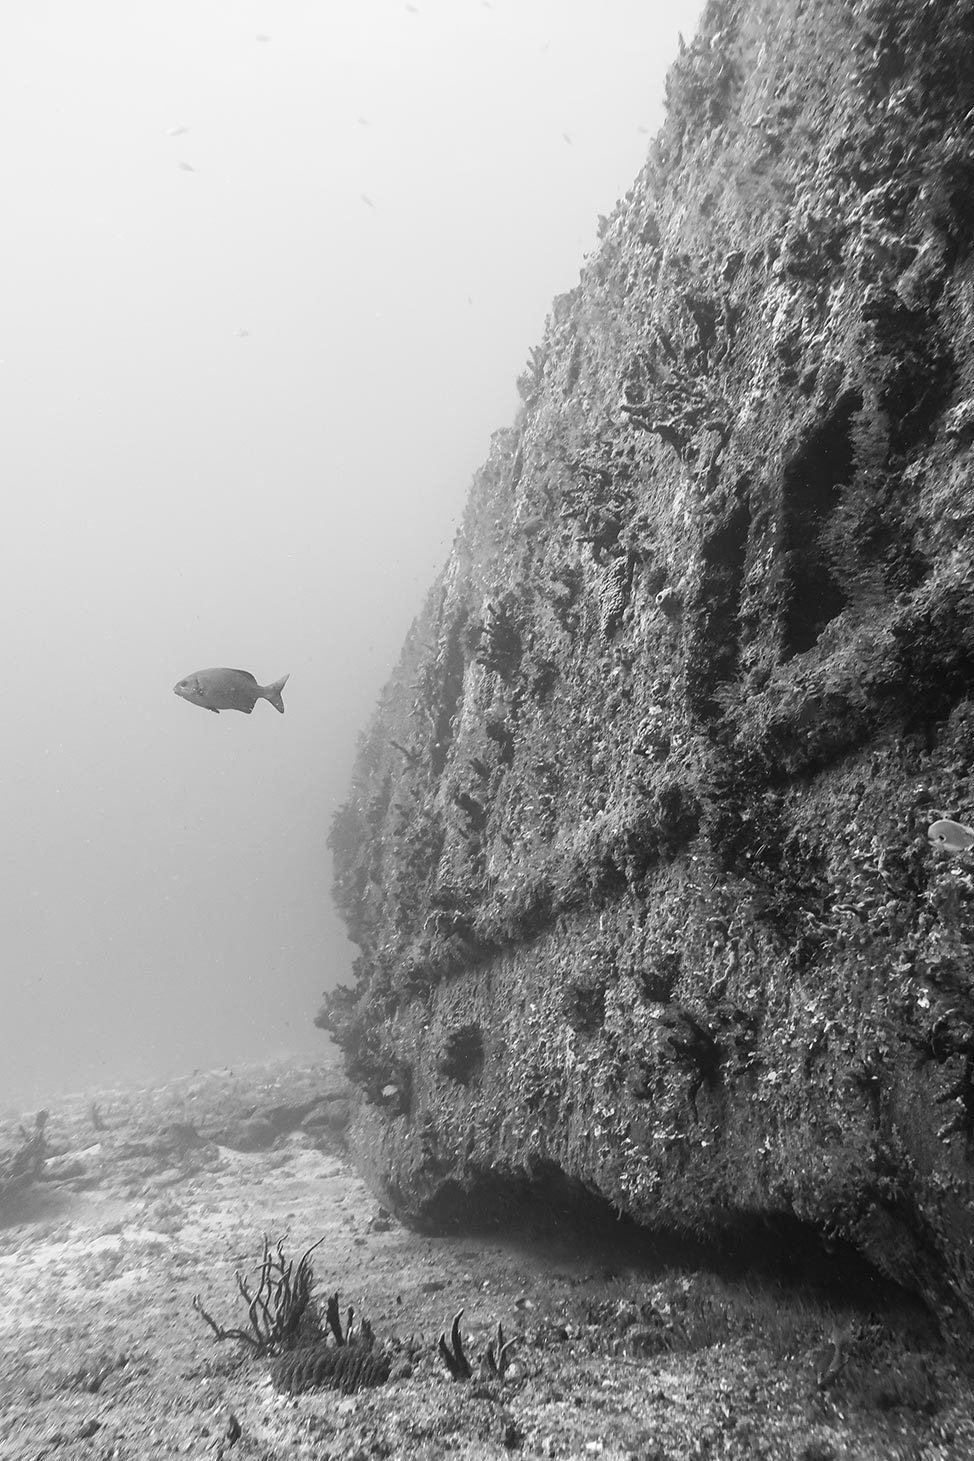 Diving the Gunboat C-58 Shipwreck in Isla Mujeres, Mexico